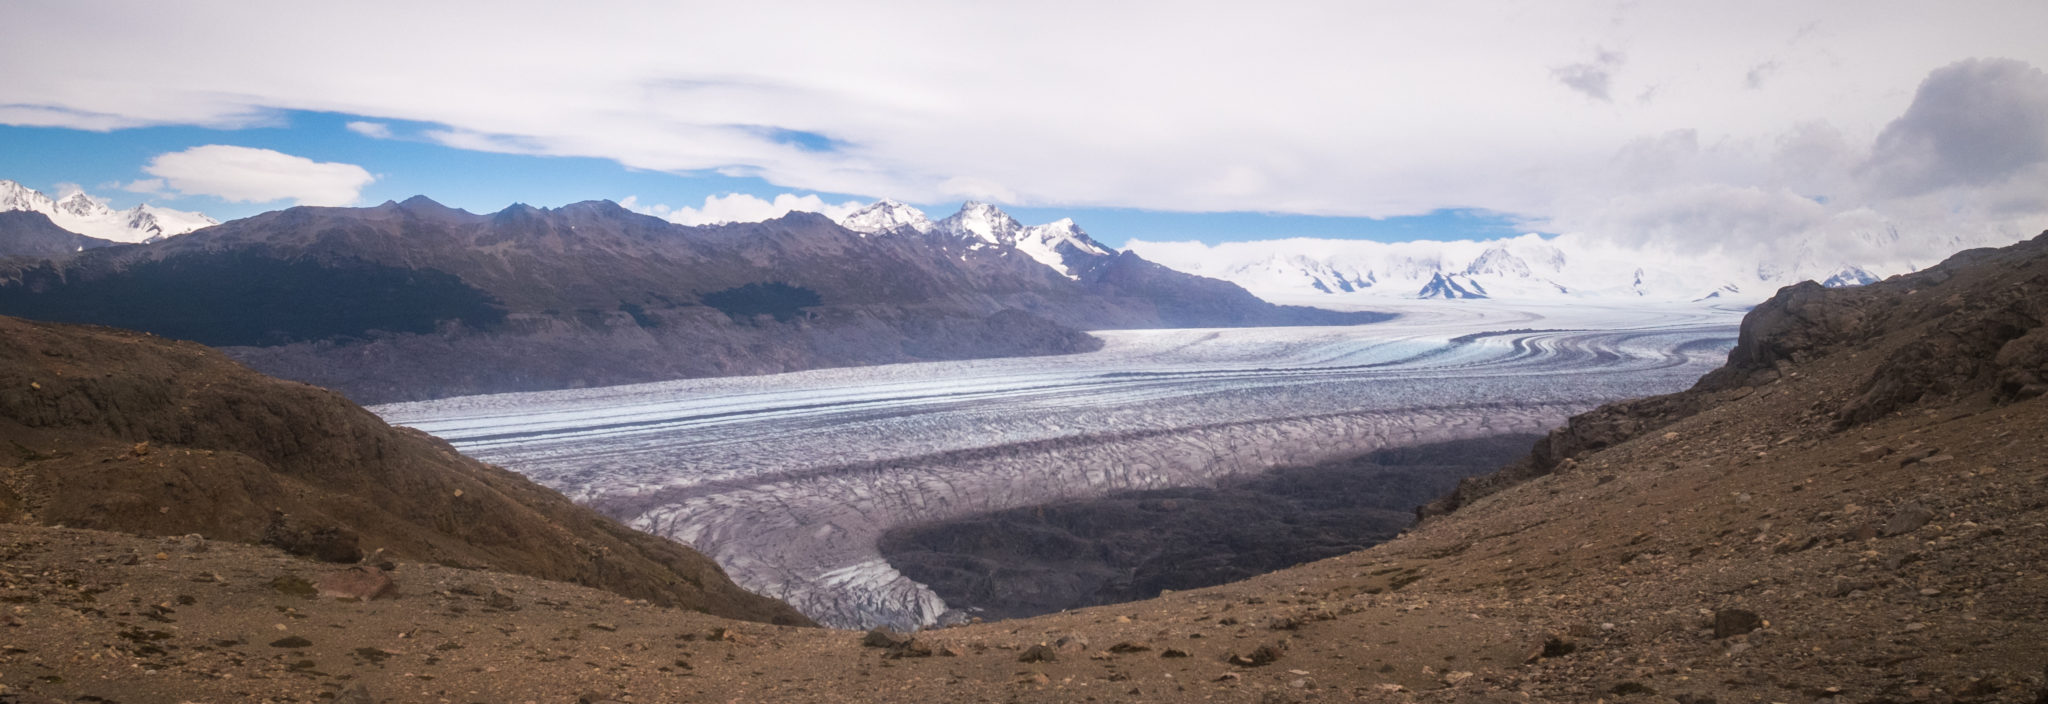 Paso del Viento trekking trip to the South Patagonia Icefield